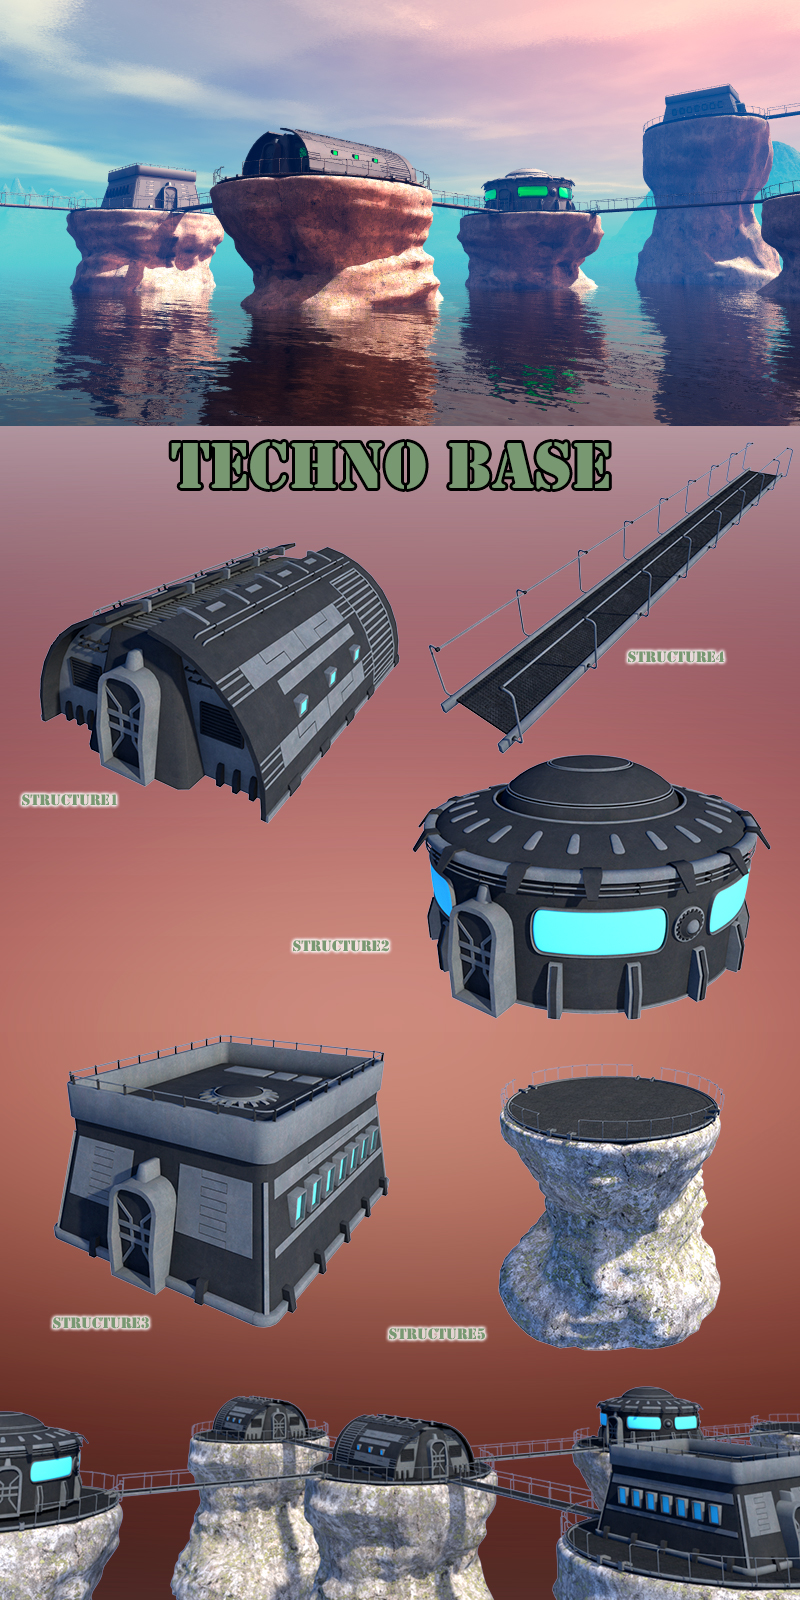 Techno base